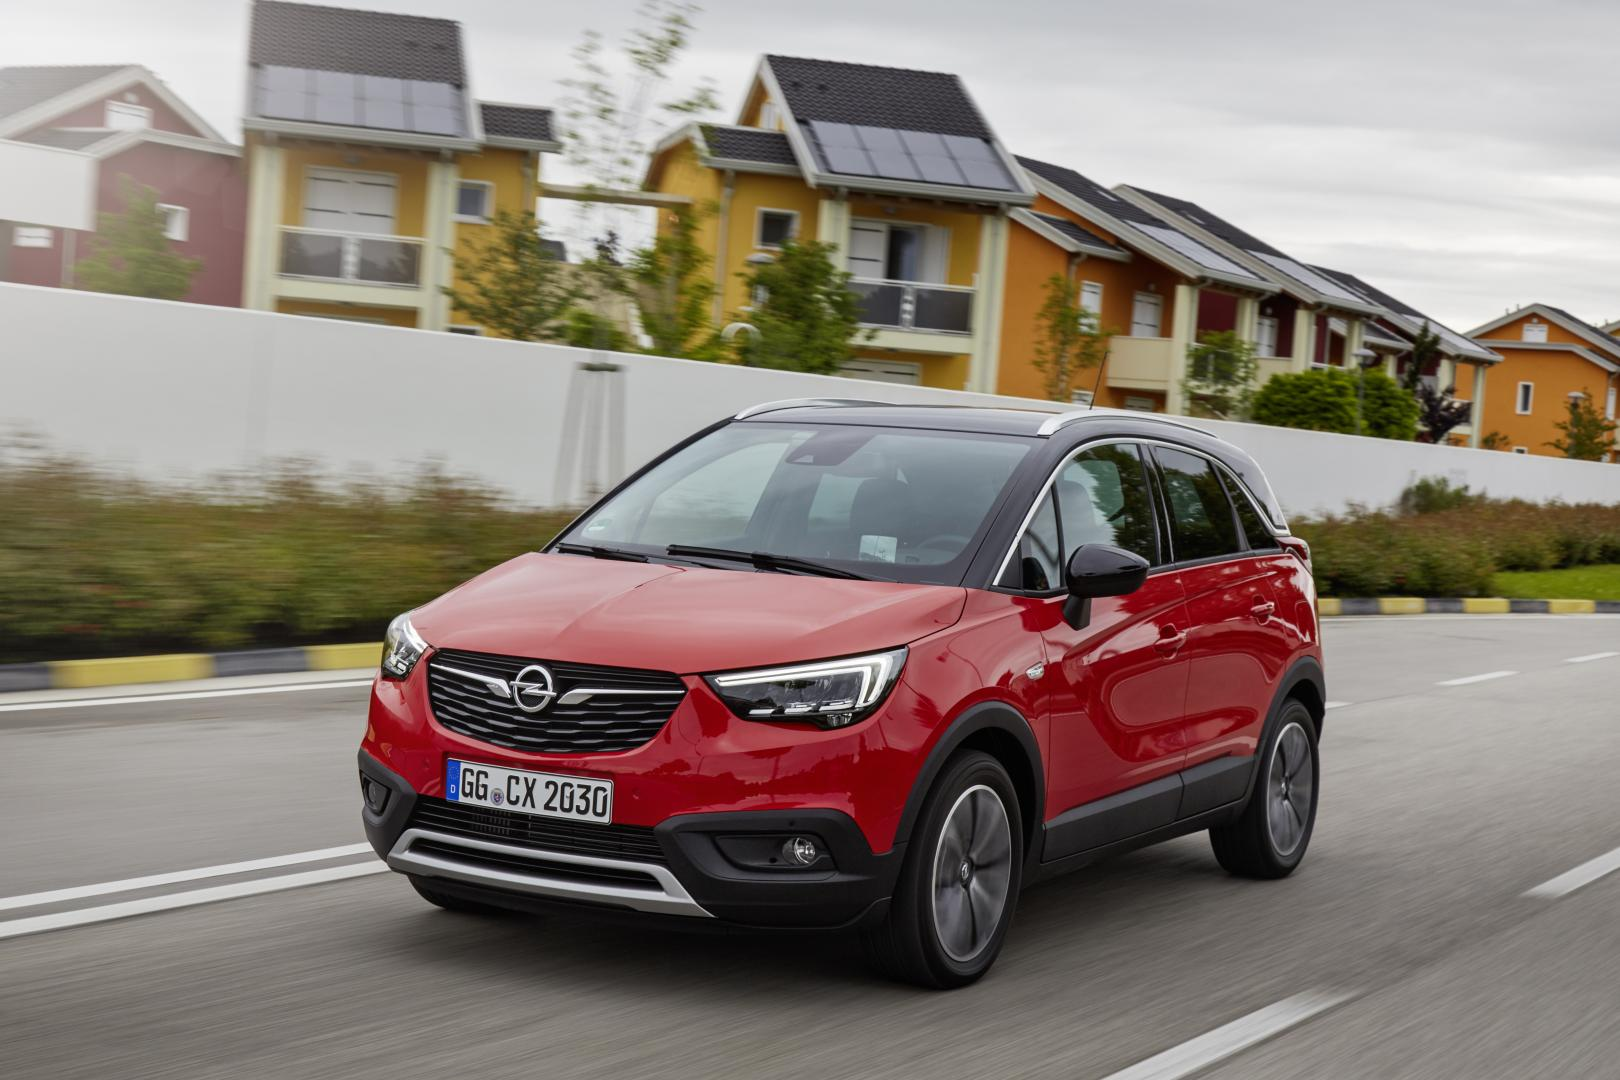 opel crossland x 1e rij indruk topgear. Black Bedroom Furniture Sets. Home Design Ideas